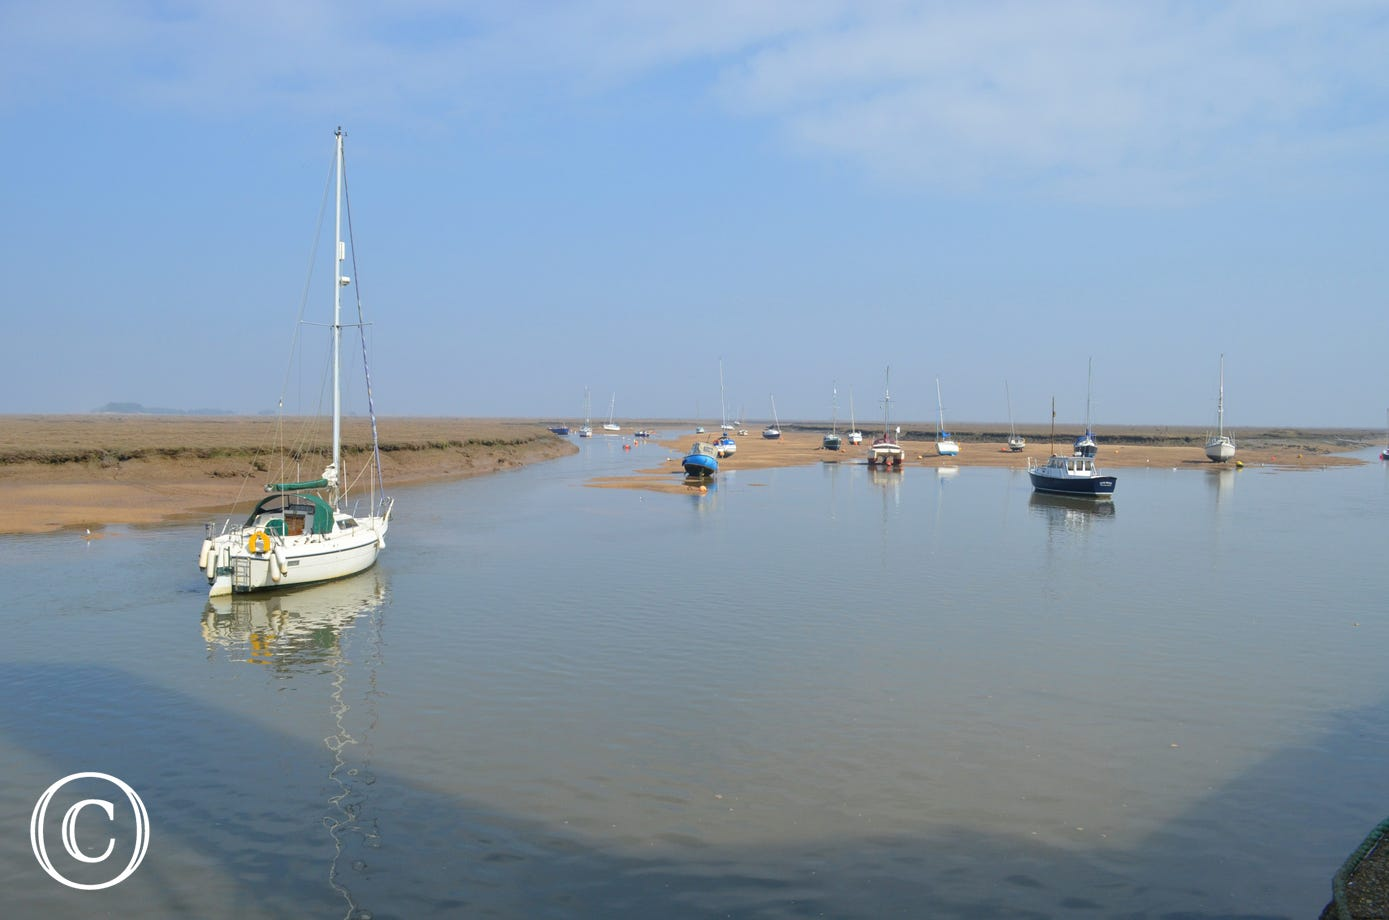 Wells Quay is within walking distance from the property